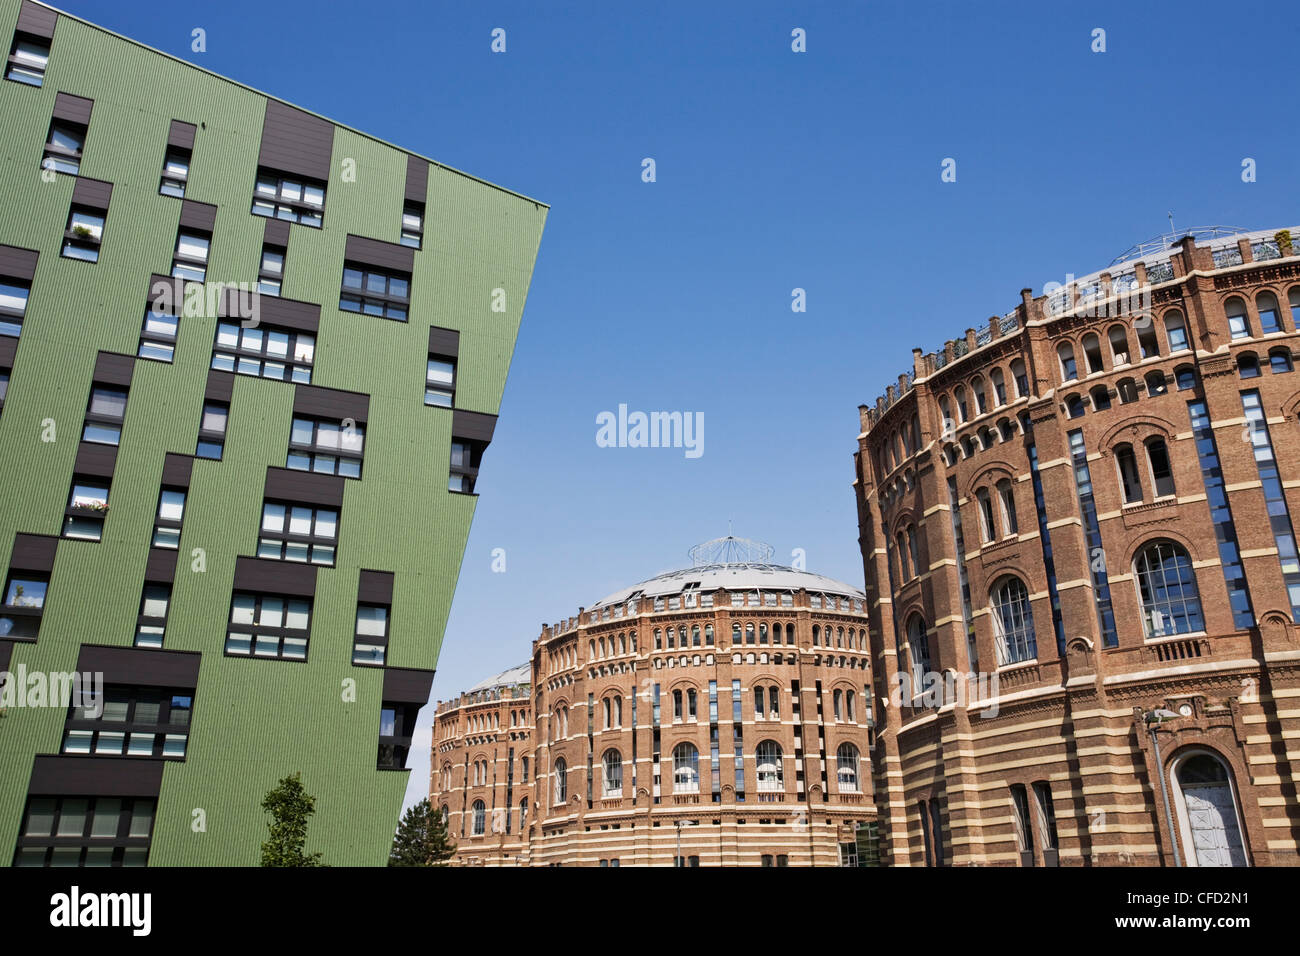 Green residential apartments and converted gasometers, Gasometer City, Simmering, Vienna, Austria, Europe - Stock Image